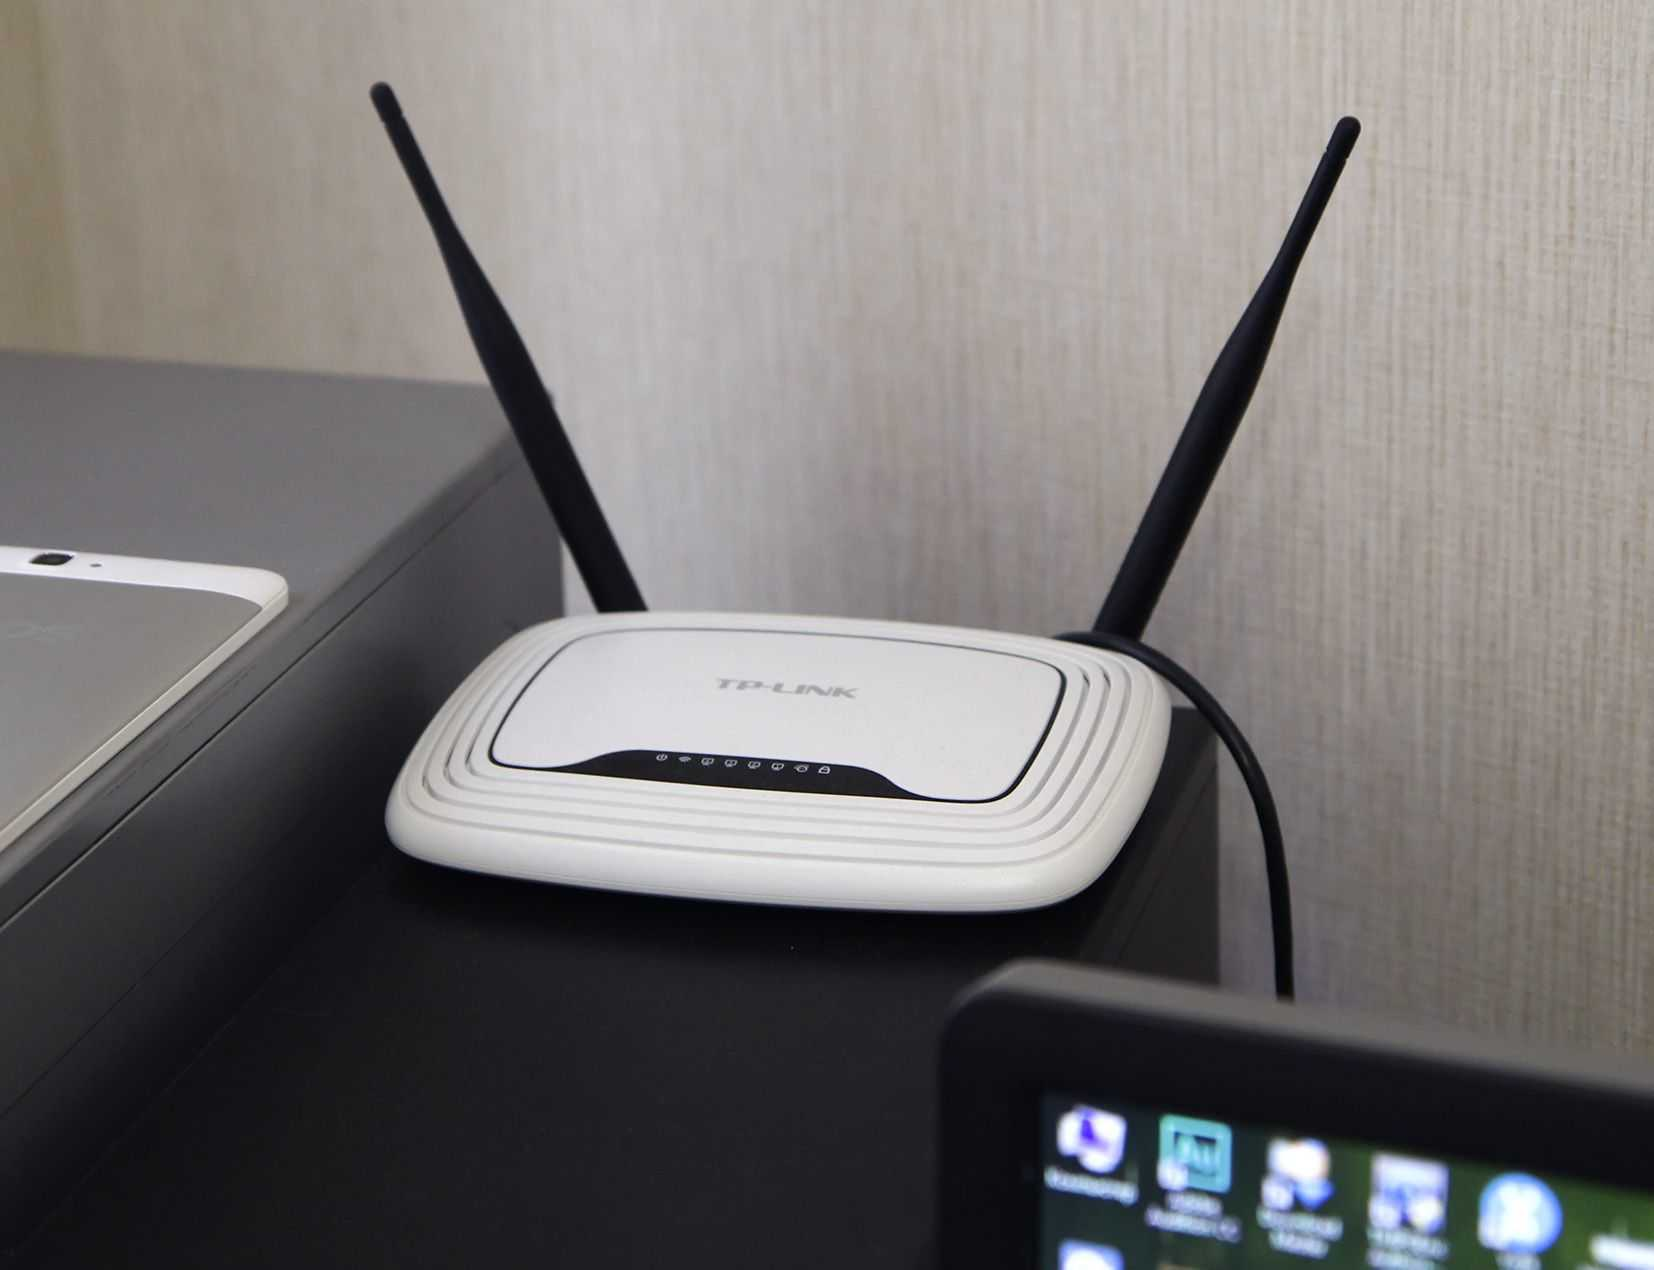 TOP best home routers